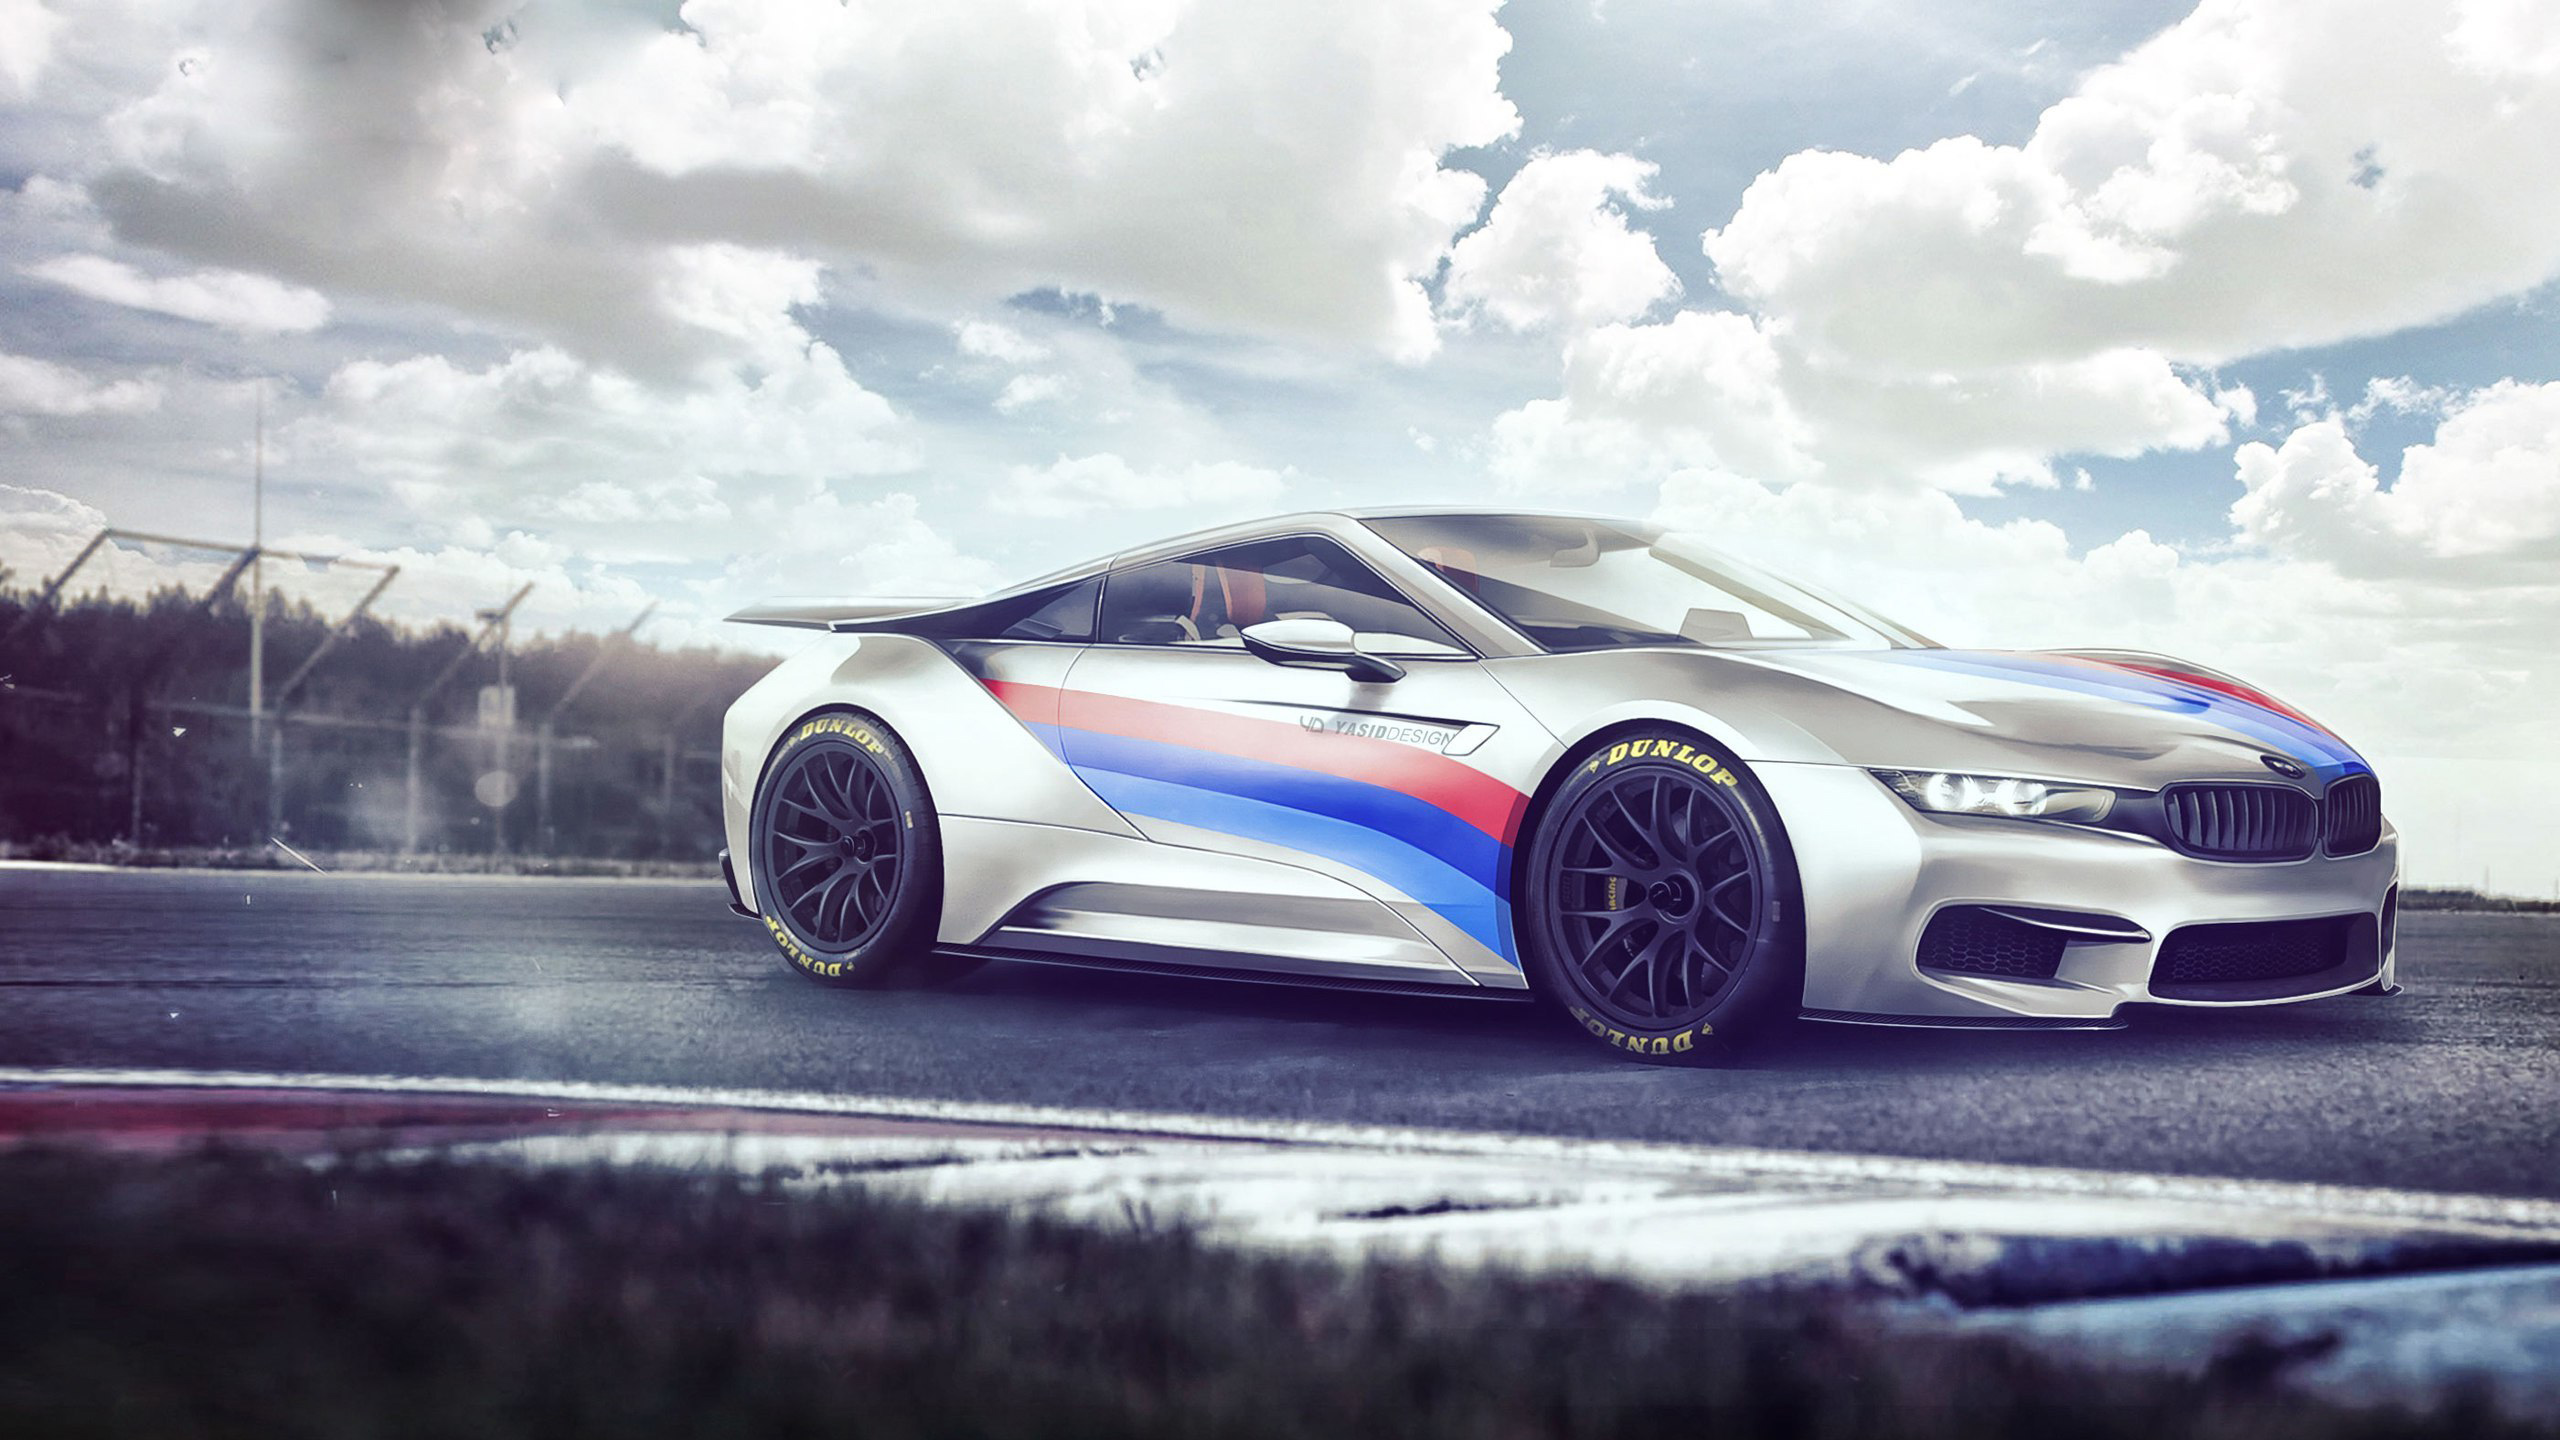 BMW i8 Concept Electro Wallpaper | HD Car Wallpapers| ID #5916